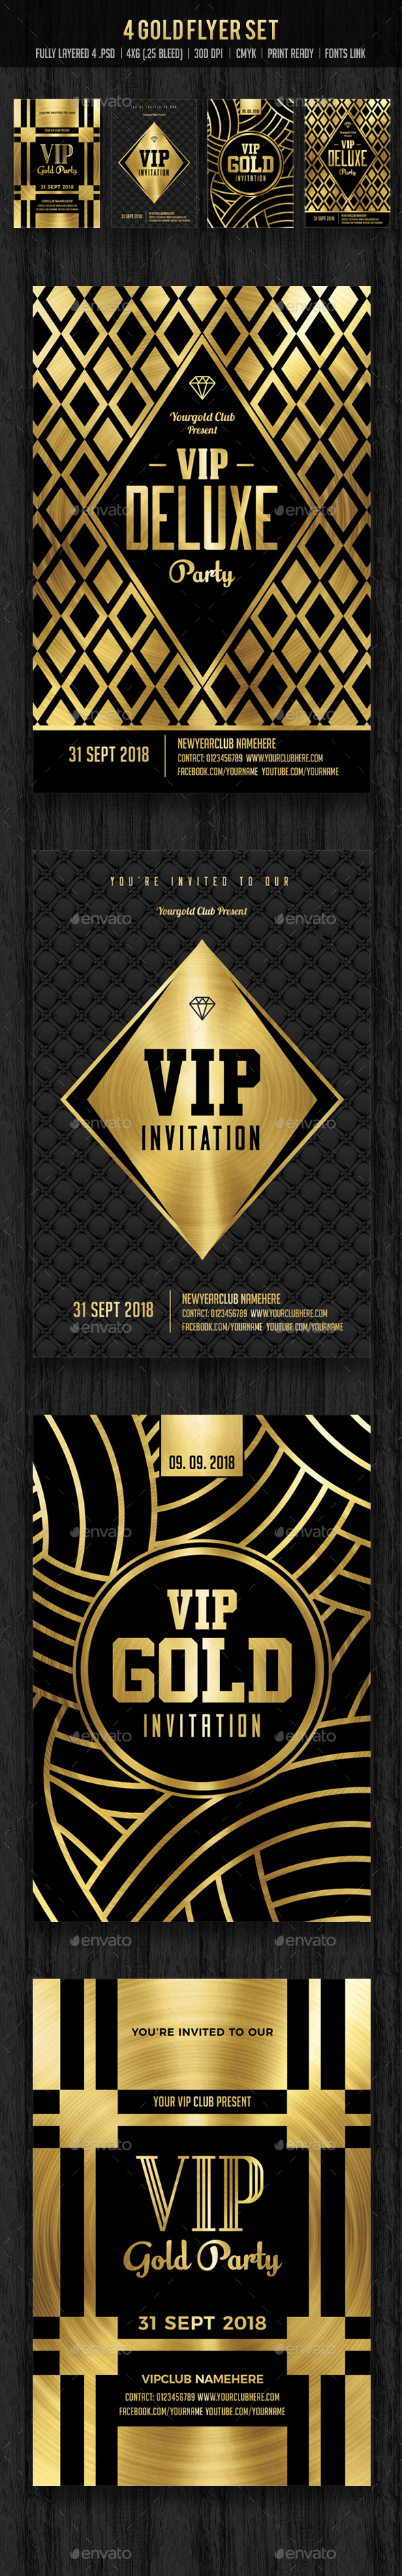 Gold Flyer Set / Gold Invitation - Clubs & Parties Events